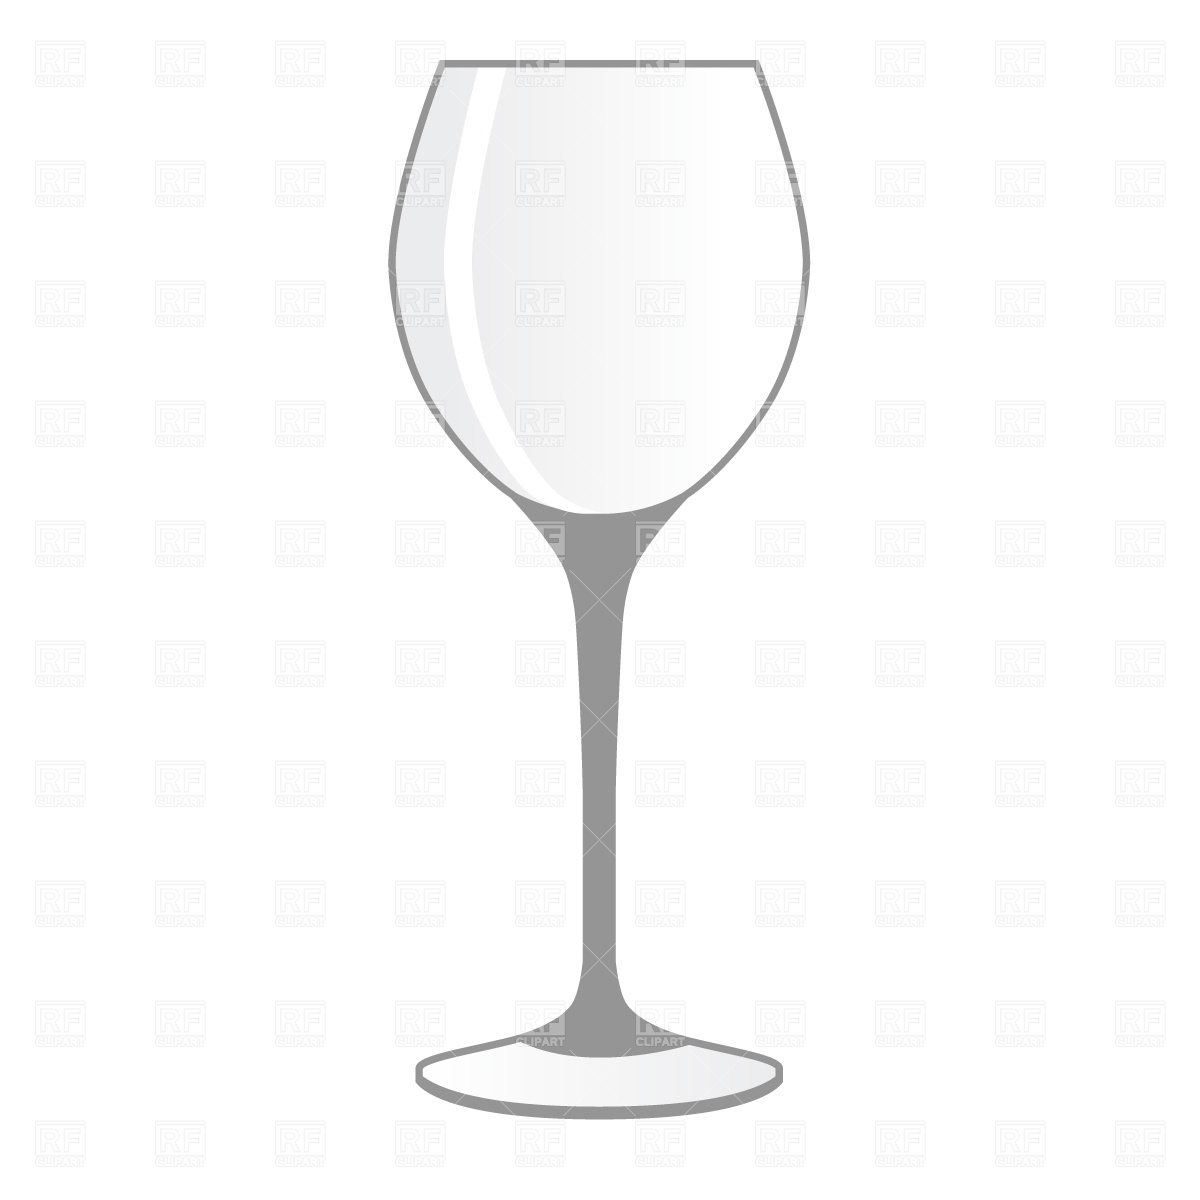 Wine Glass Vector Image at GetDrawings.com.